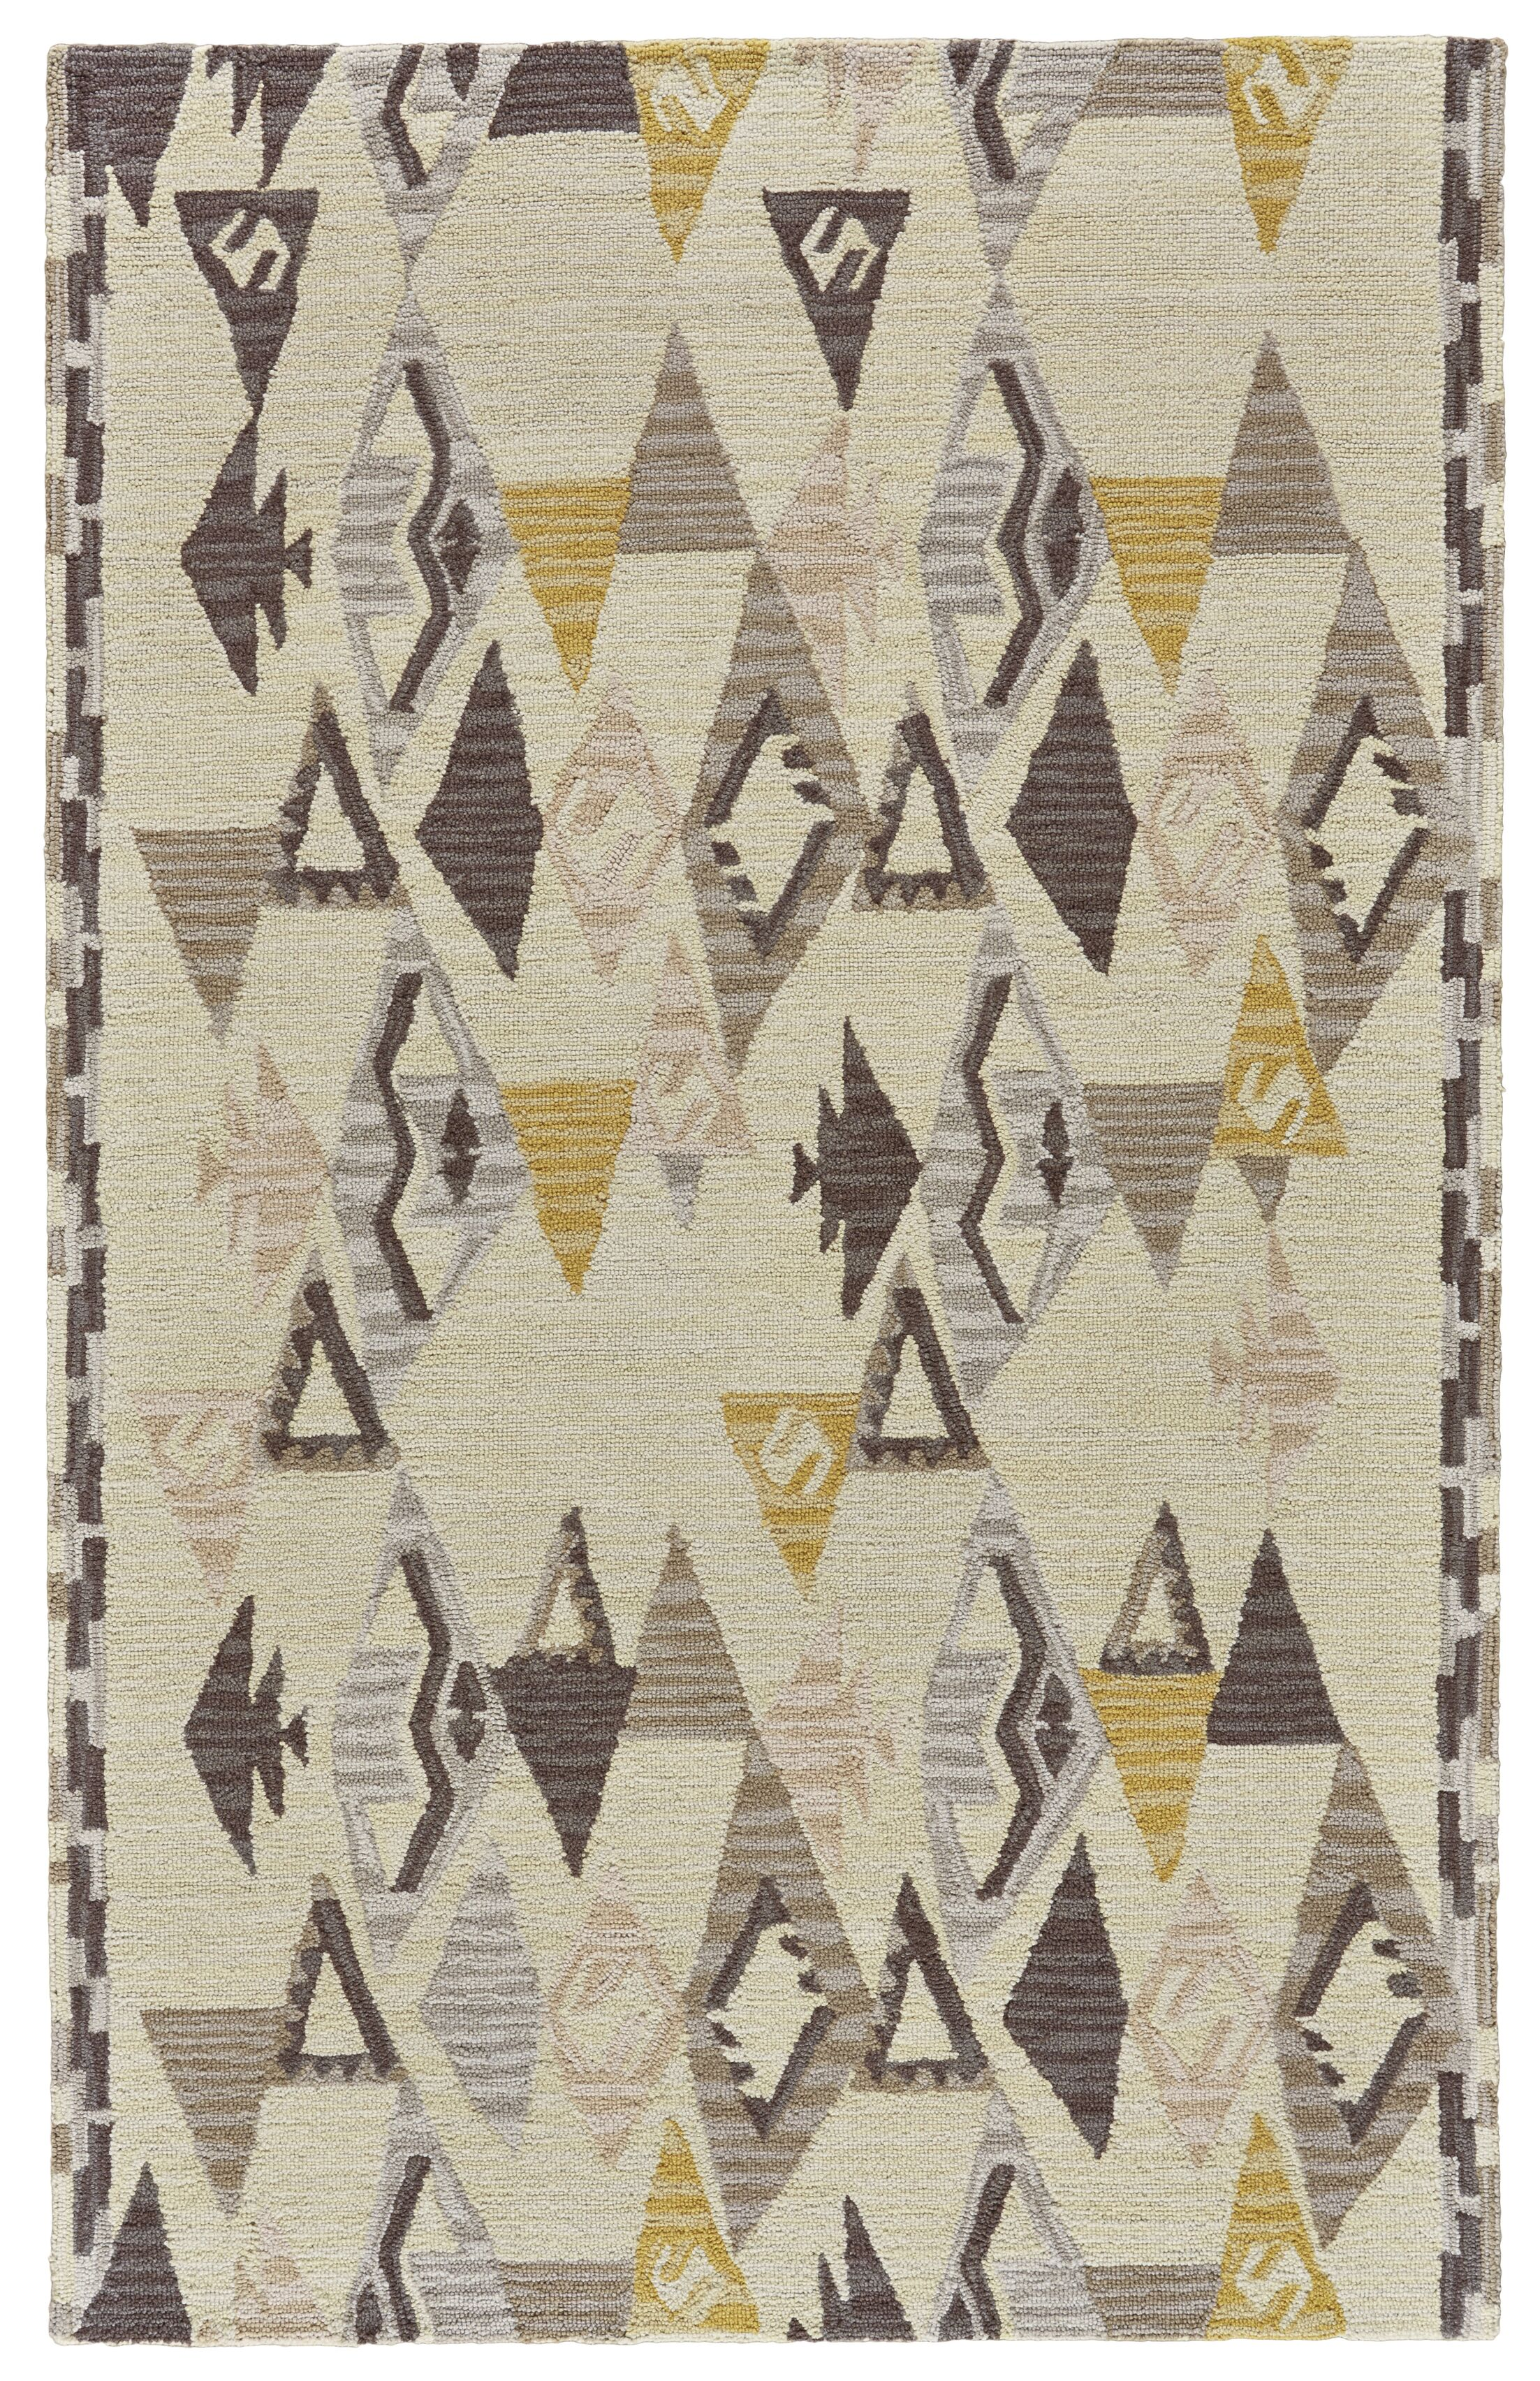 Pacifica Hand-Tufted Yellow/Natural Area Rug Rug Size: Rectangle 8' x 11'